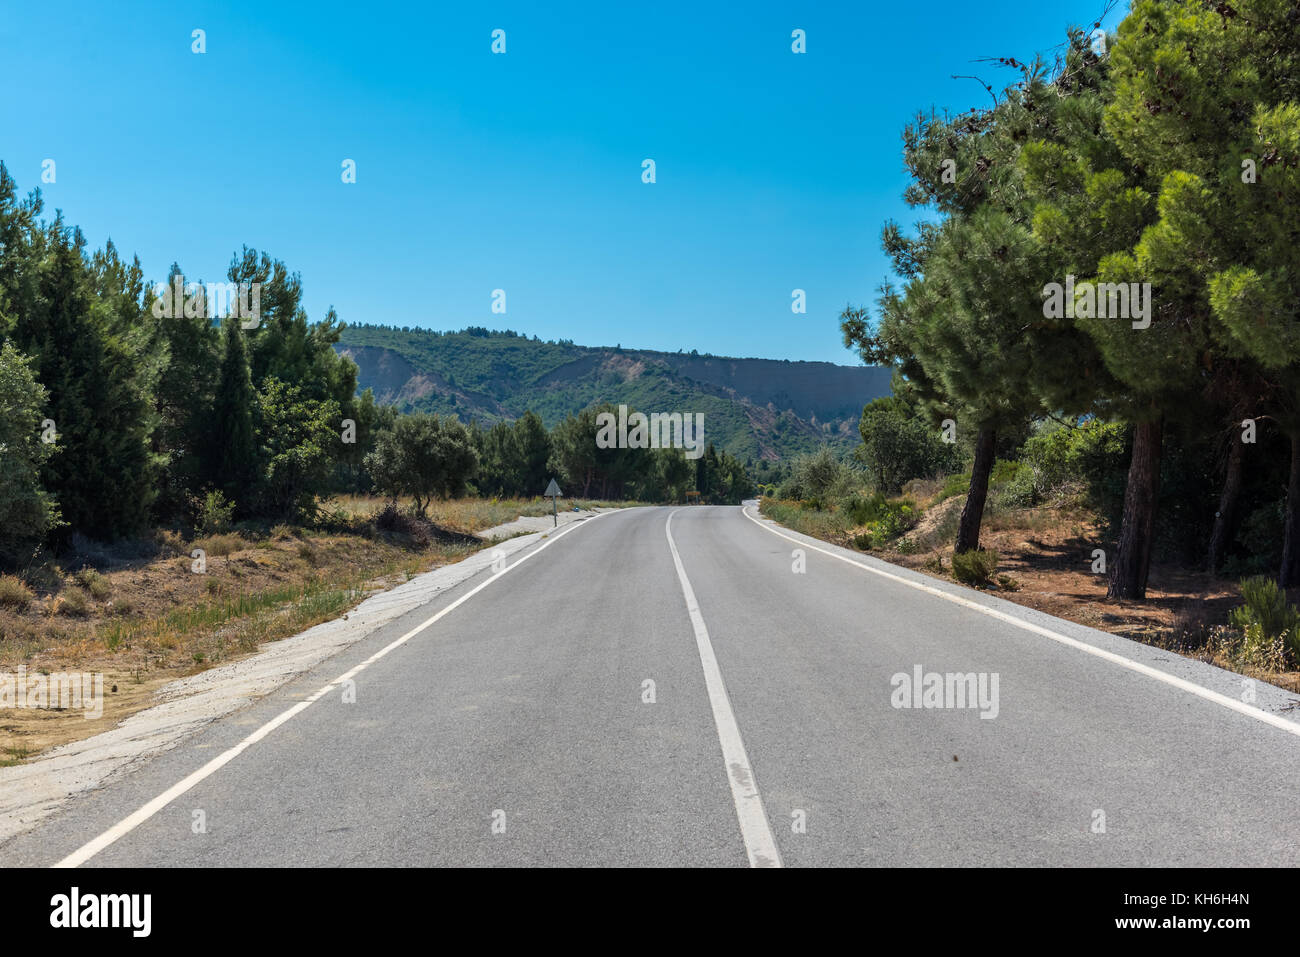 Anzac-Suvla Road in Canakkale,Turkey. - Stock Image